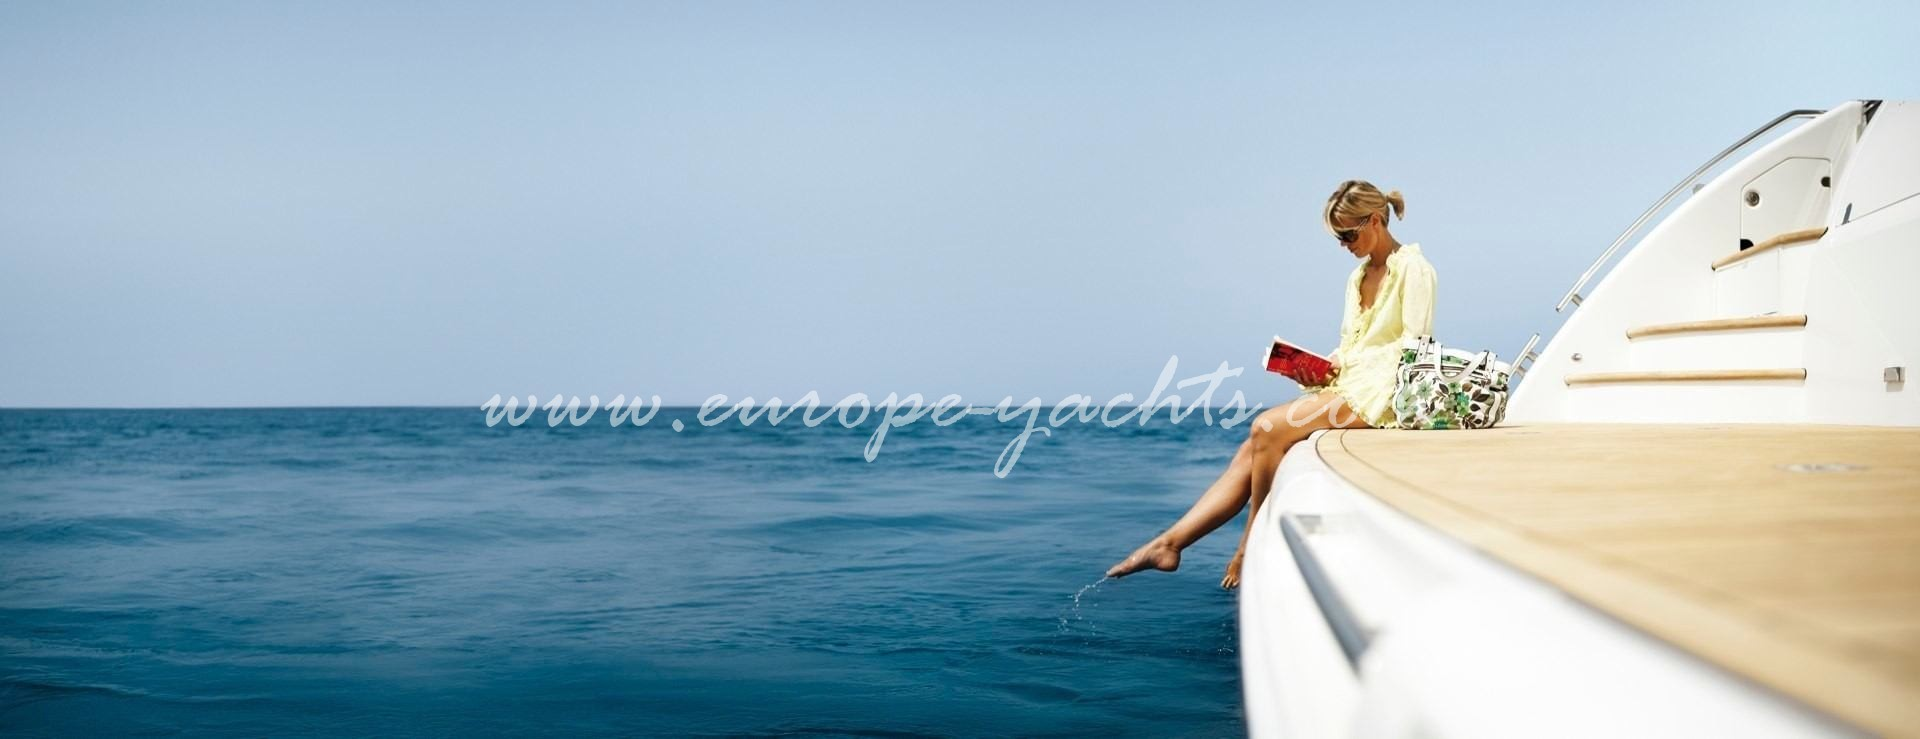 VIP luxury yacht charter services